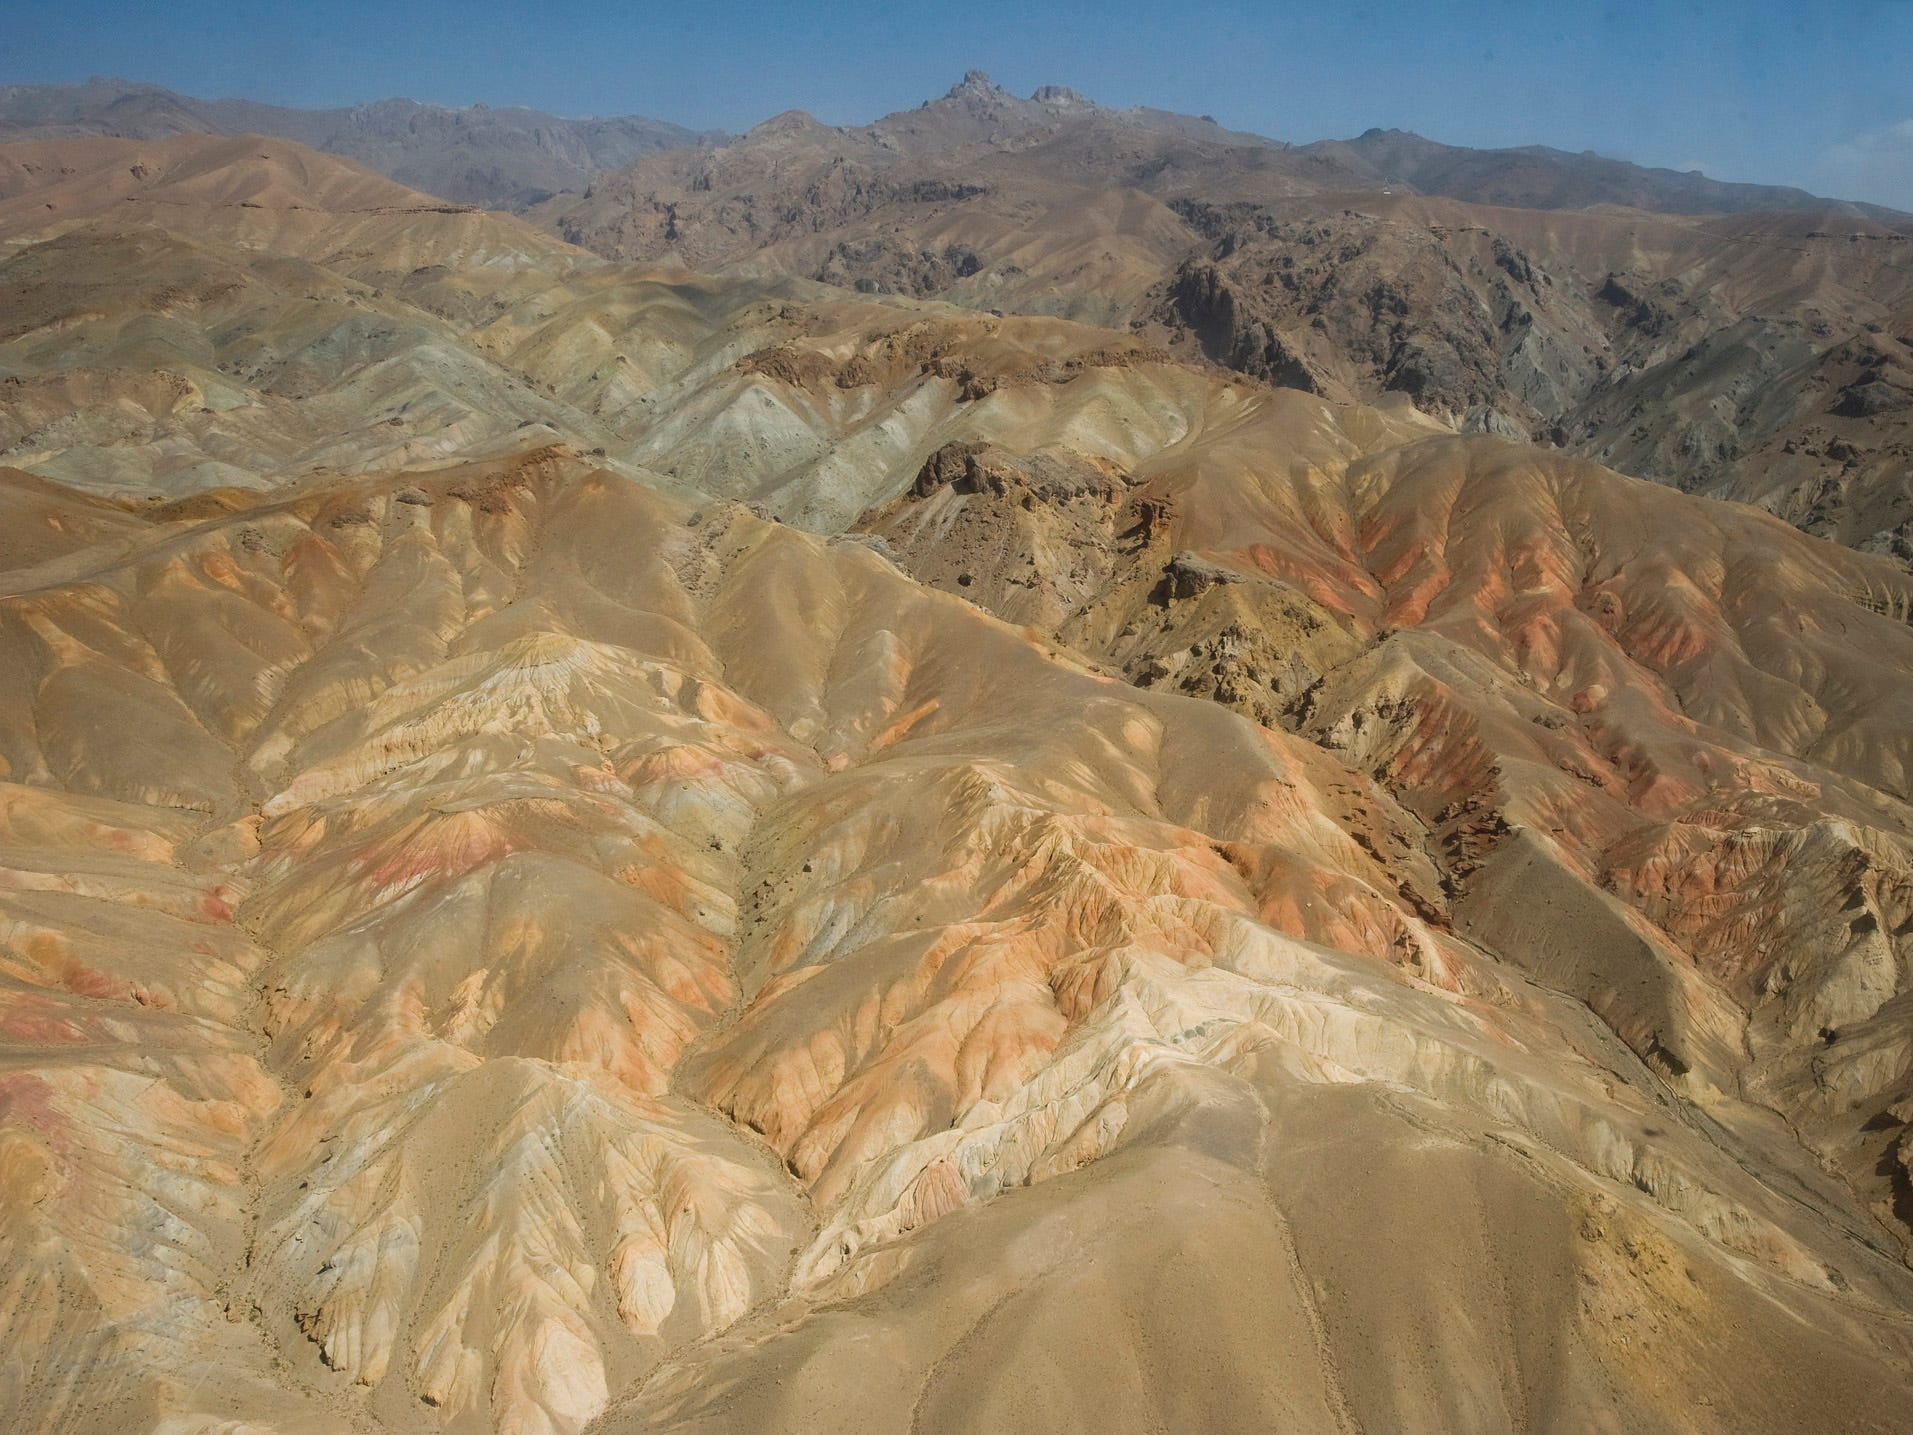 The view of the Afghanistan landscape taken from a Black Hawk helicopter on Friday, September 10, 2010, on route from Bagram Airfield near Kabul to Forward Operating Base Kiwi in Bamyan Province in the center of the country. The area is considered one of the most peaceful in the country.